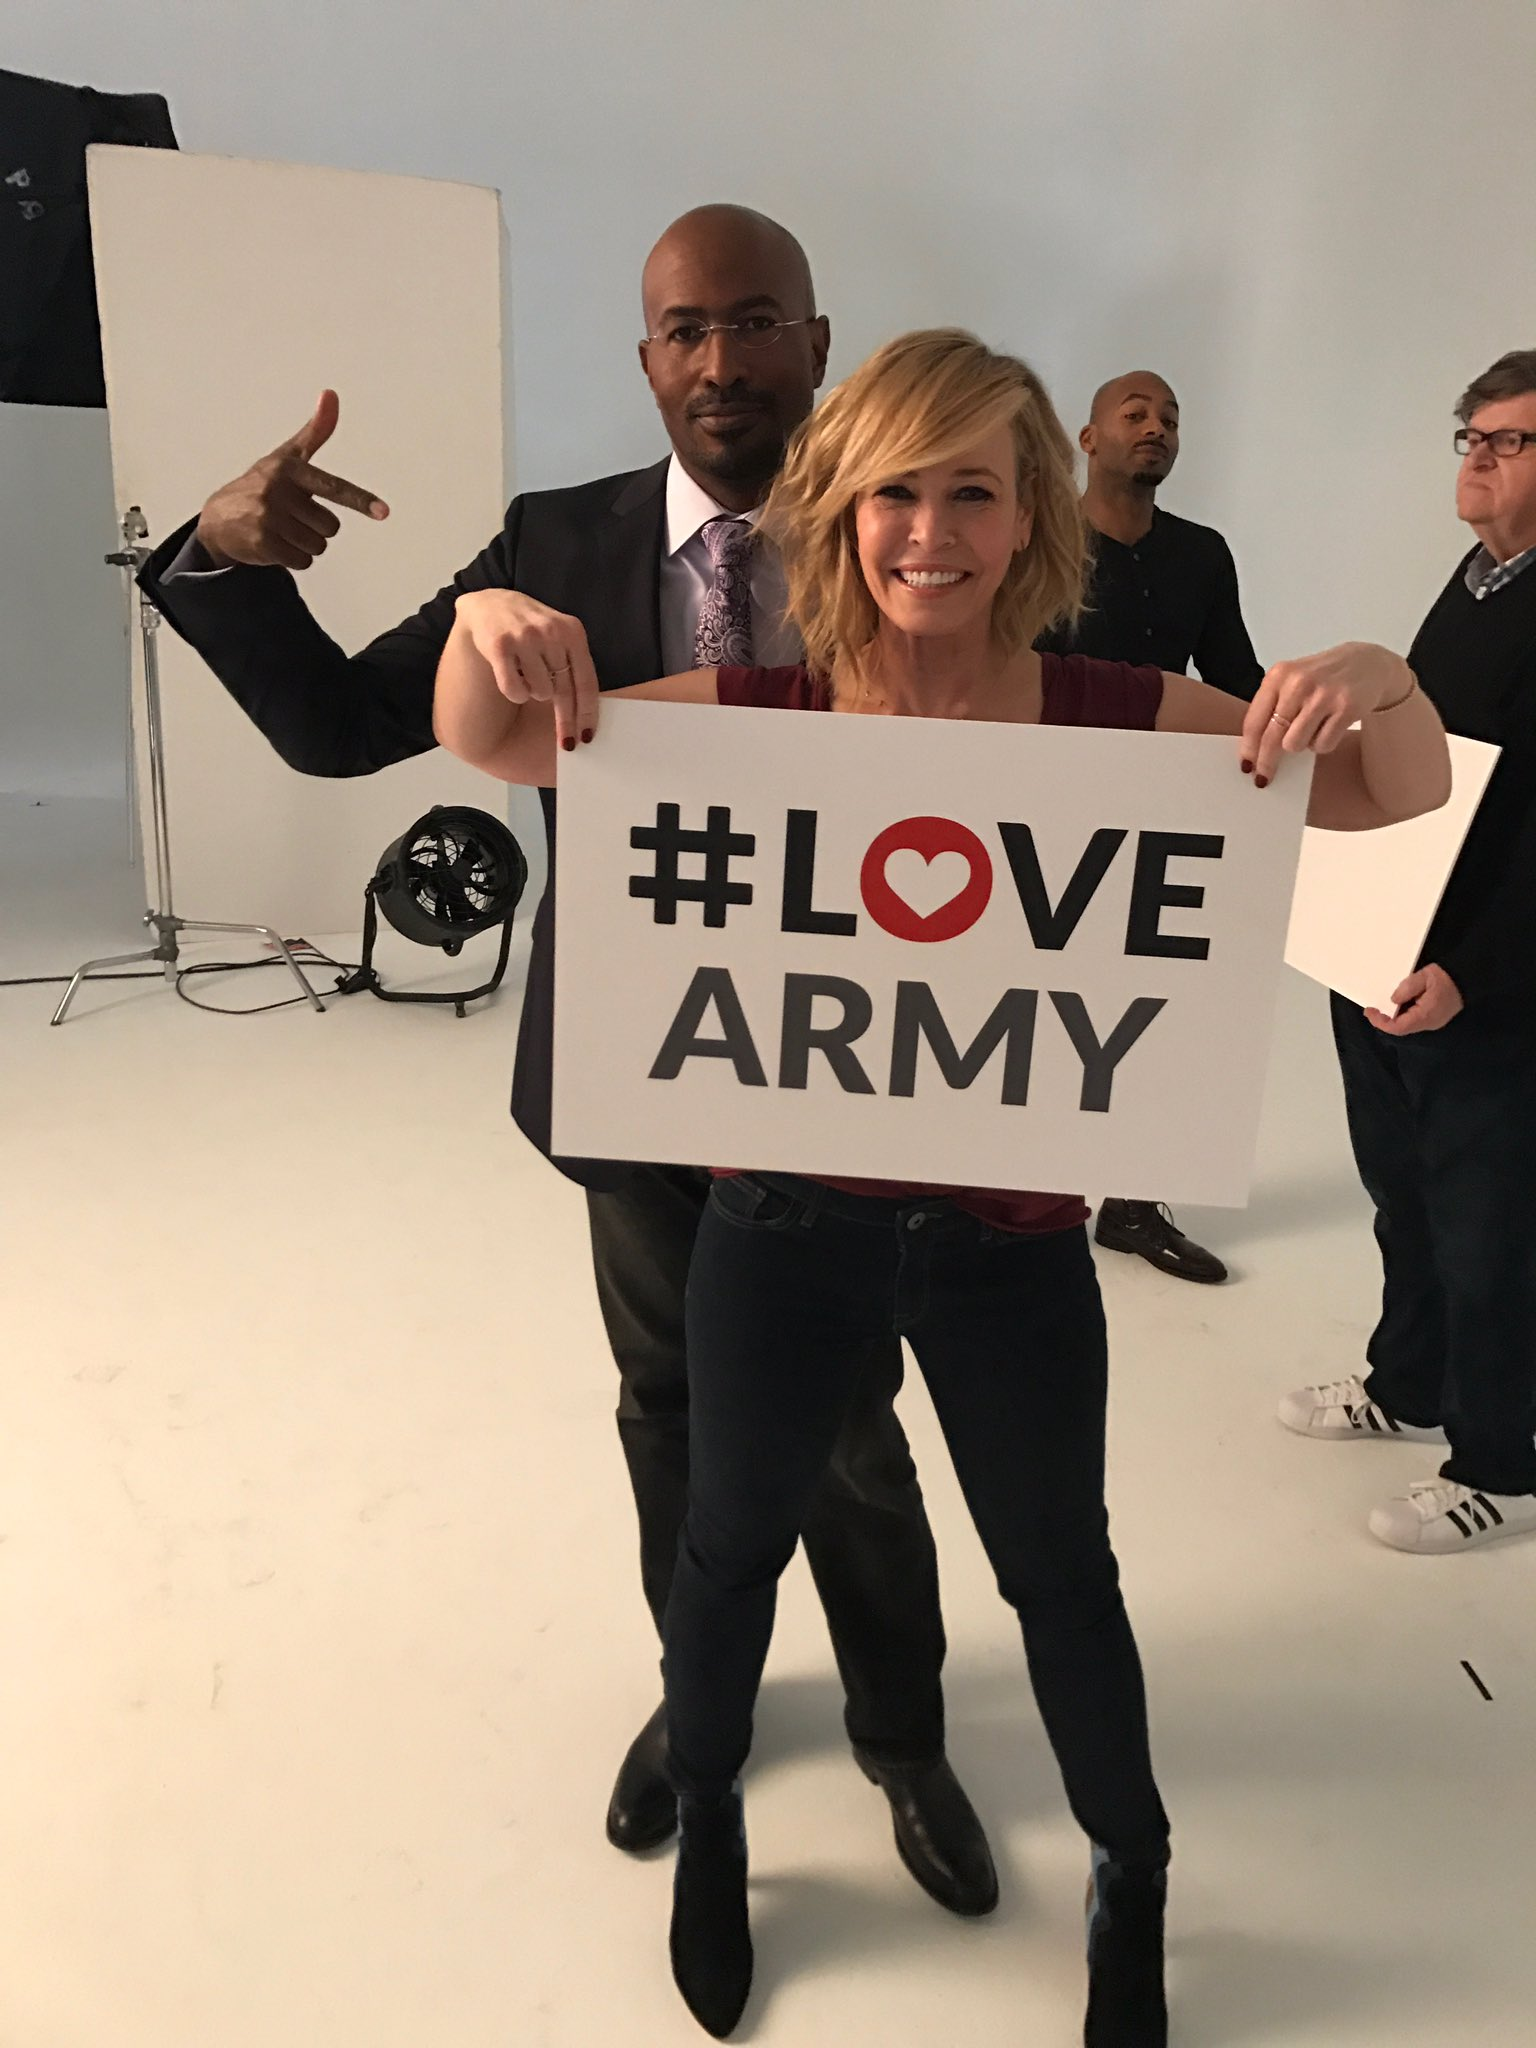 You can got to https://t.co/ANkWe1y50V to register to be part of the love army @VanJones68 I just signed up. https://t.co/S3tqwbU3tf